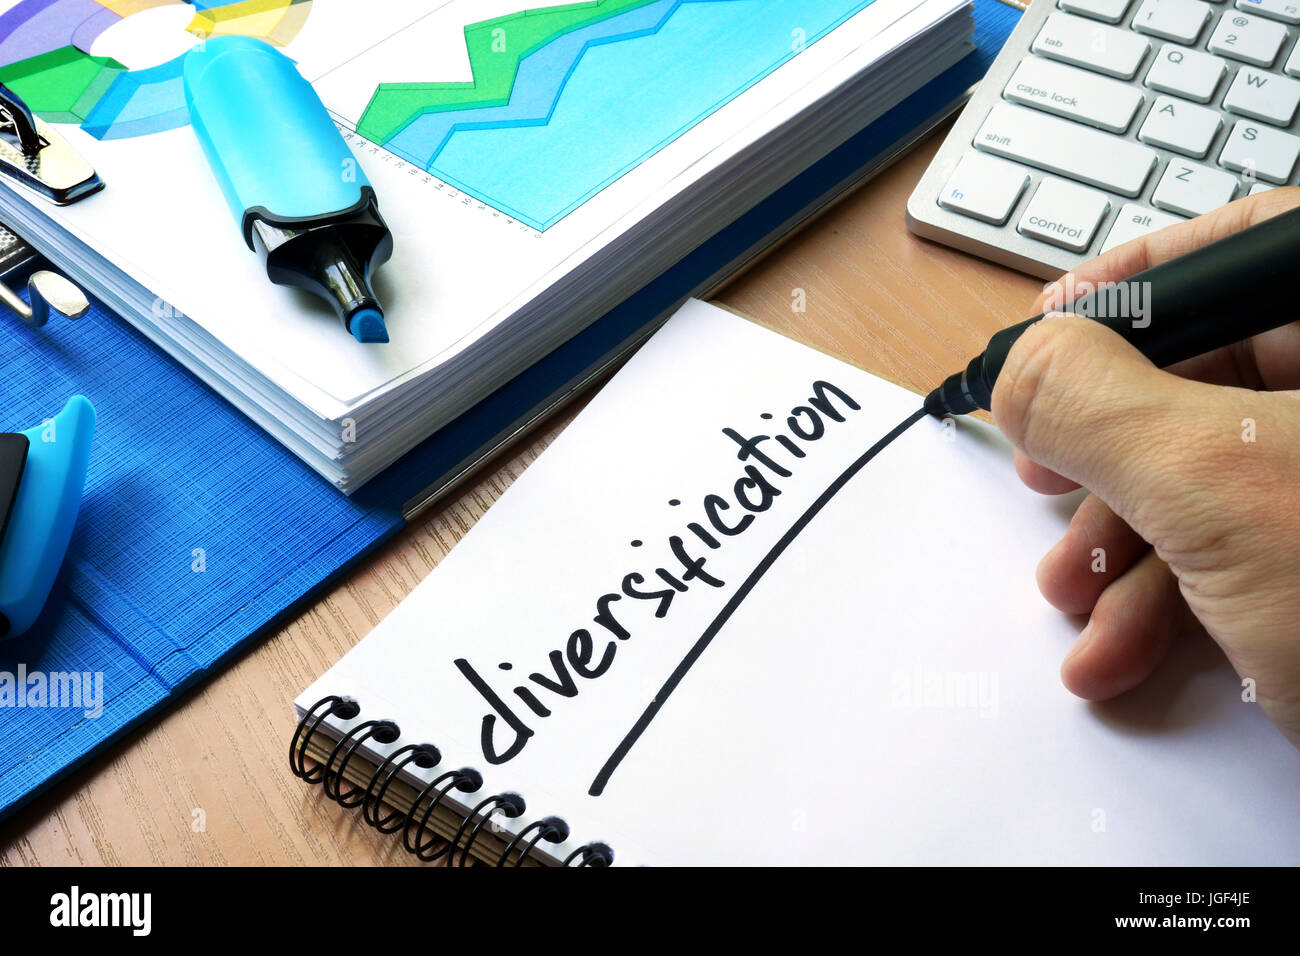 Handwriting sign diversification in a note. Stock Photo